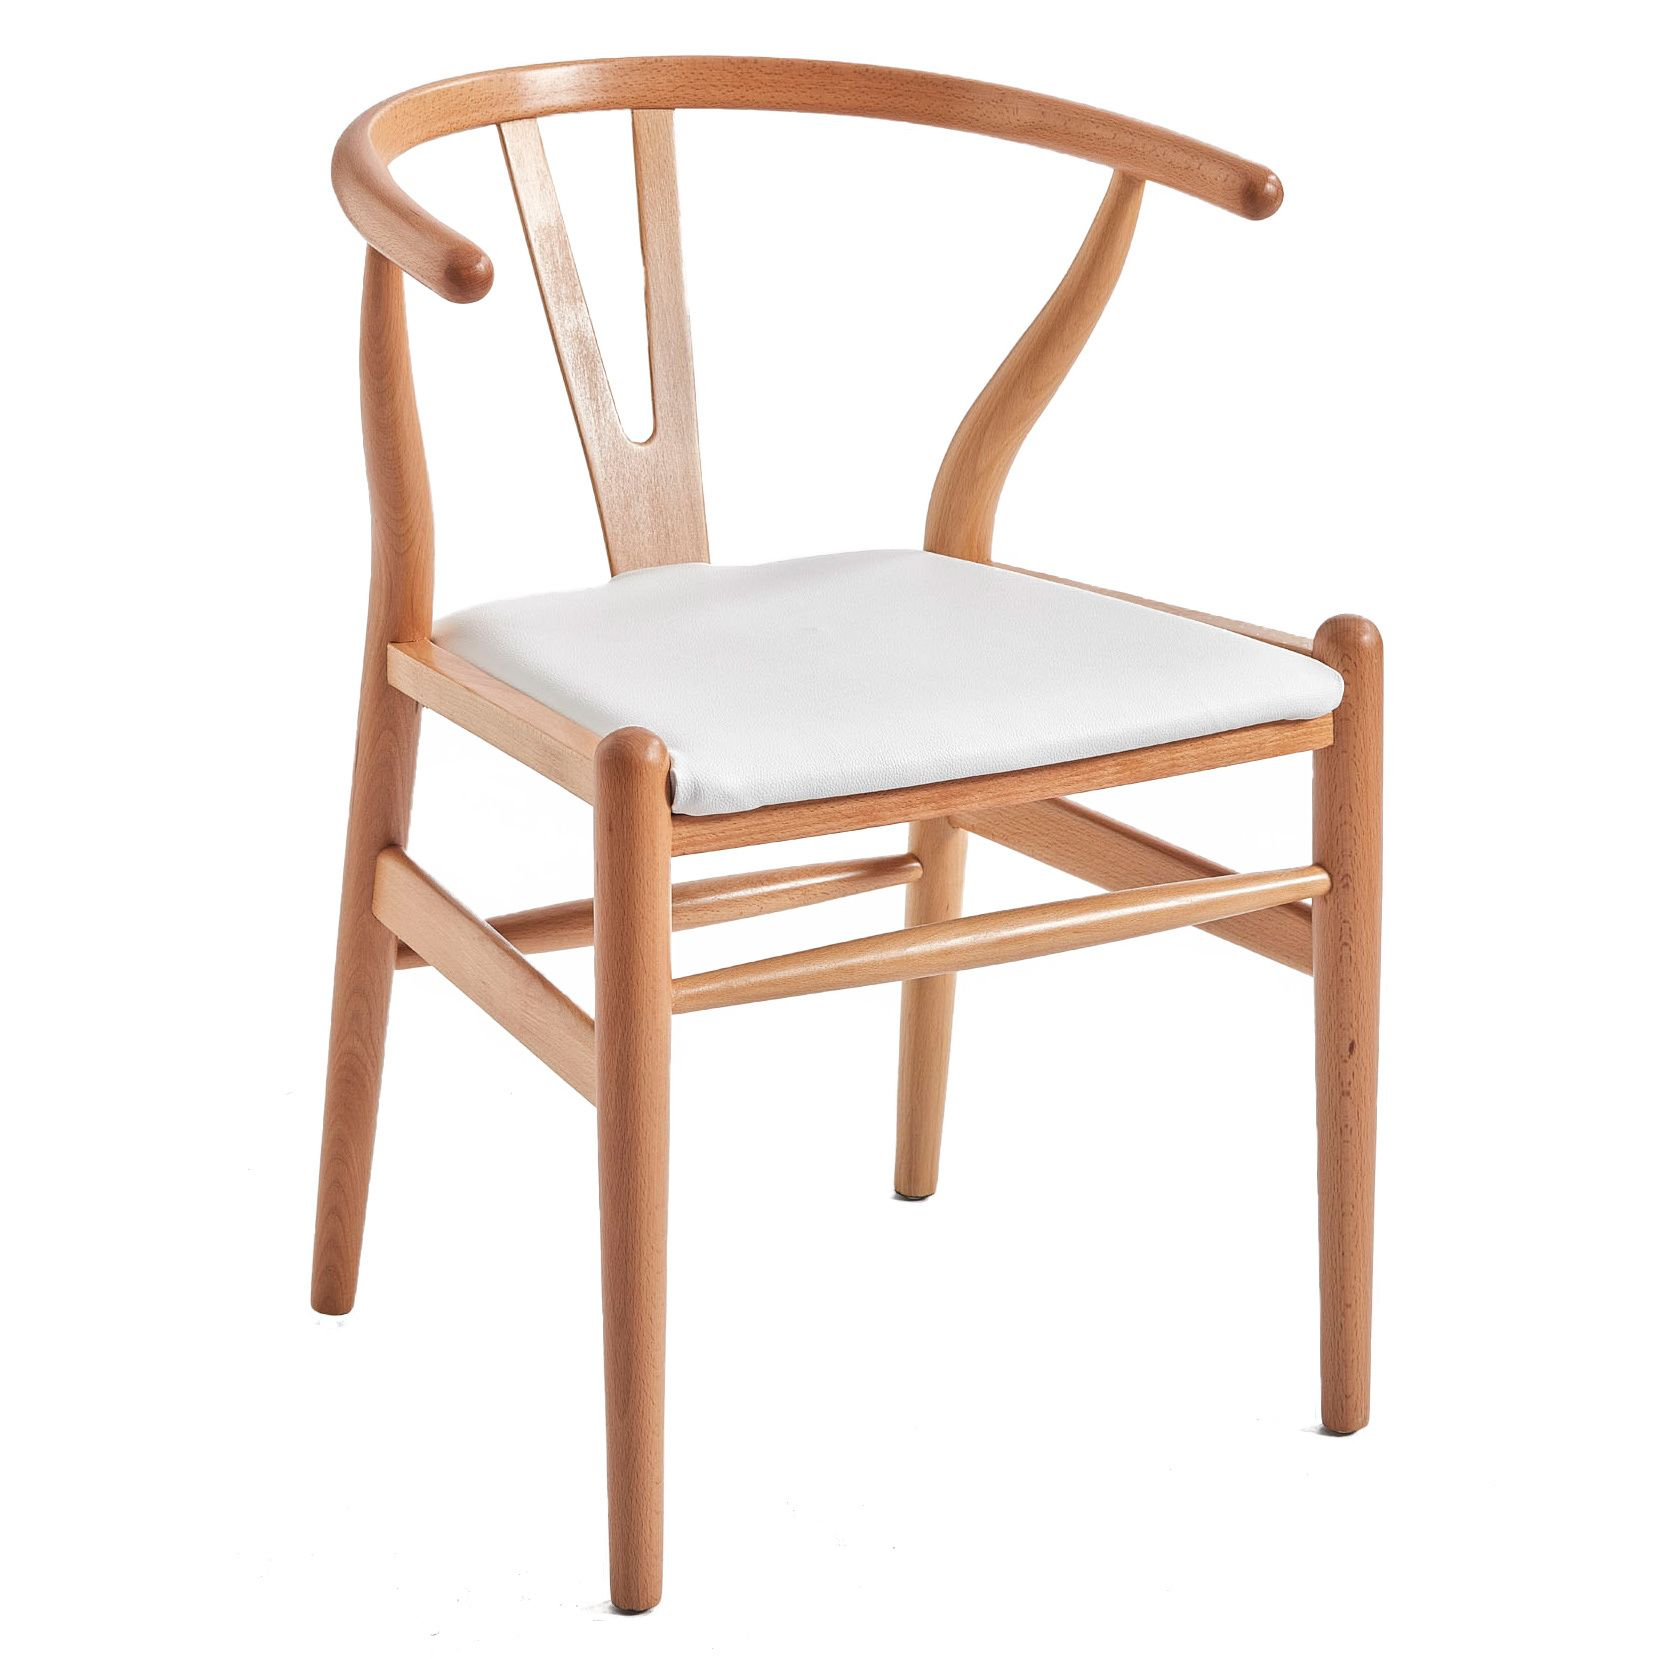 Hans Wegner Replica Wishbone Chair with Padded Seat by